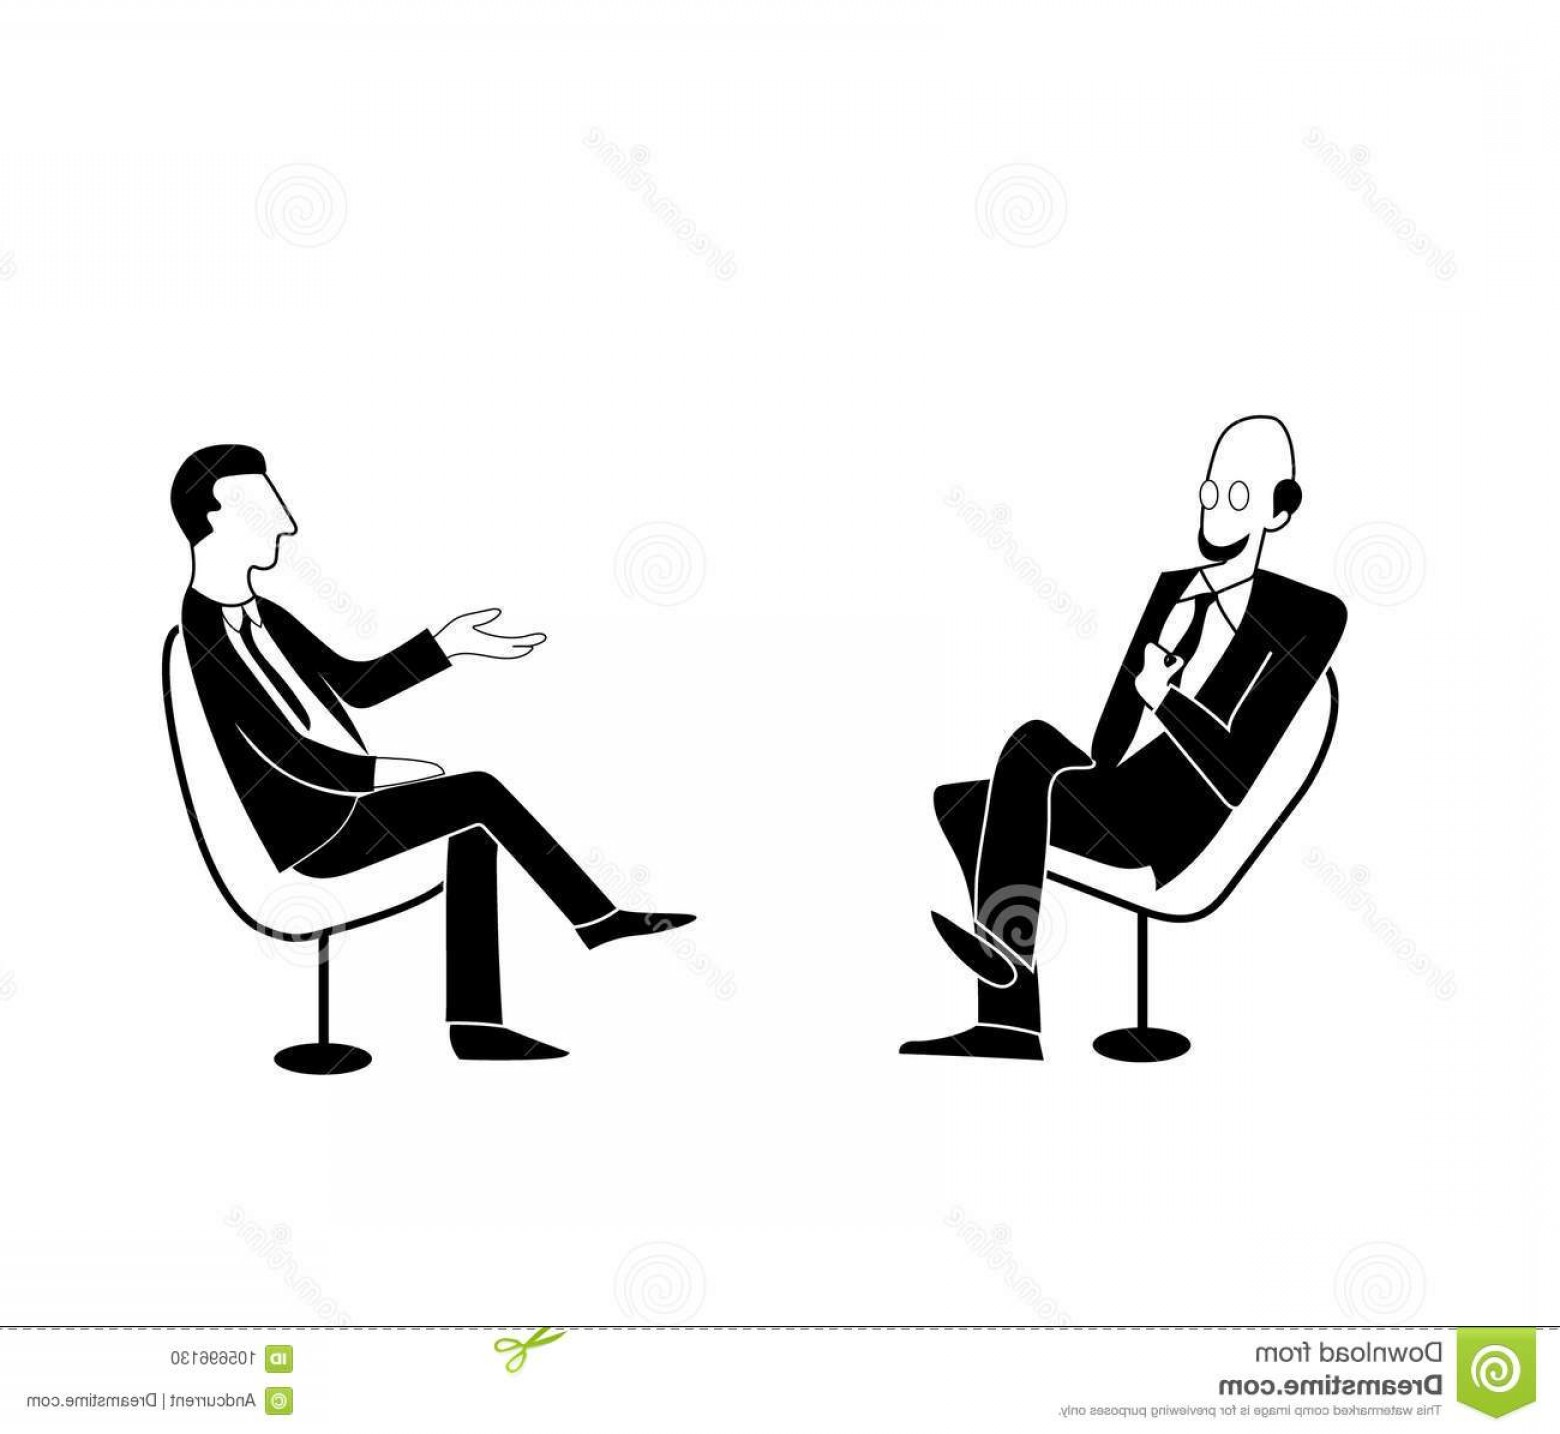 Talk Show Vector: Scientific Political Talk Show Vector Drawing Image Shows Interview Discussion Two Men Jackets Ties Sit Chairs Facing Image